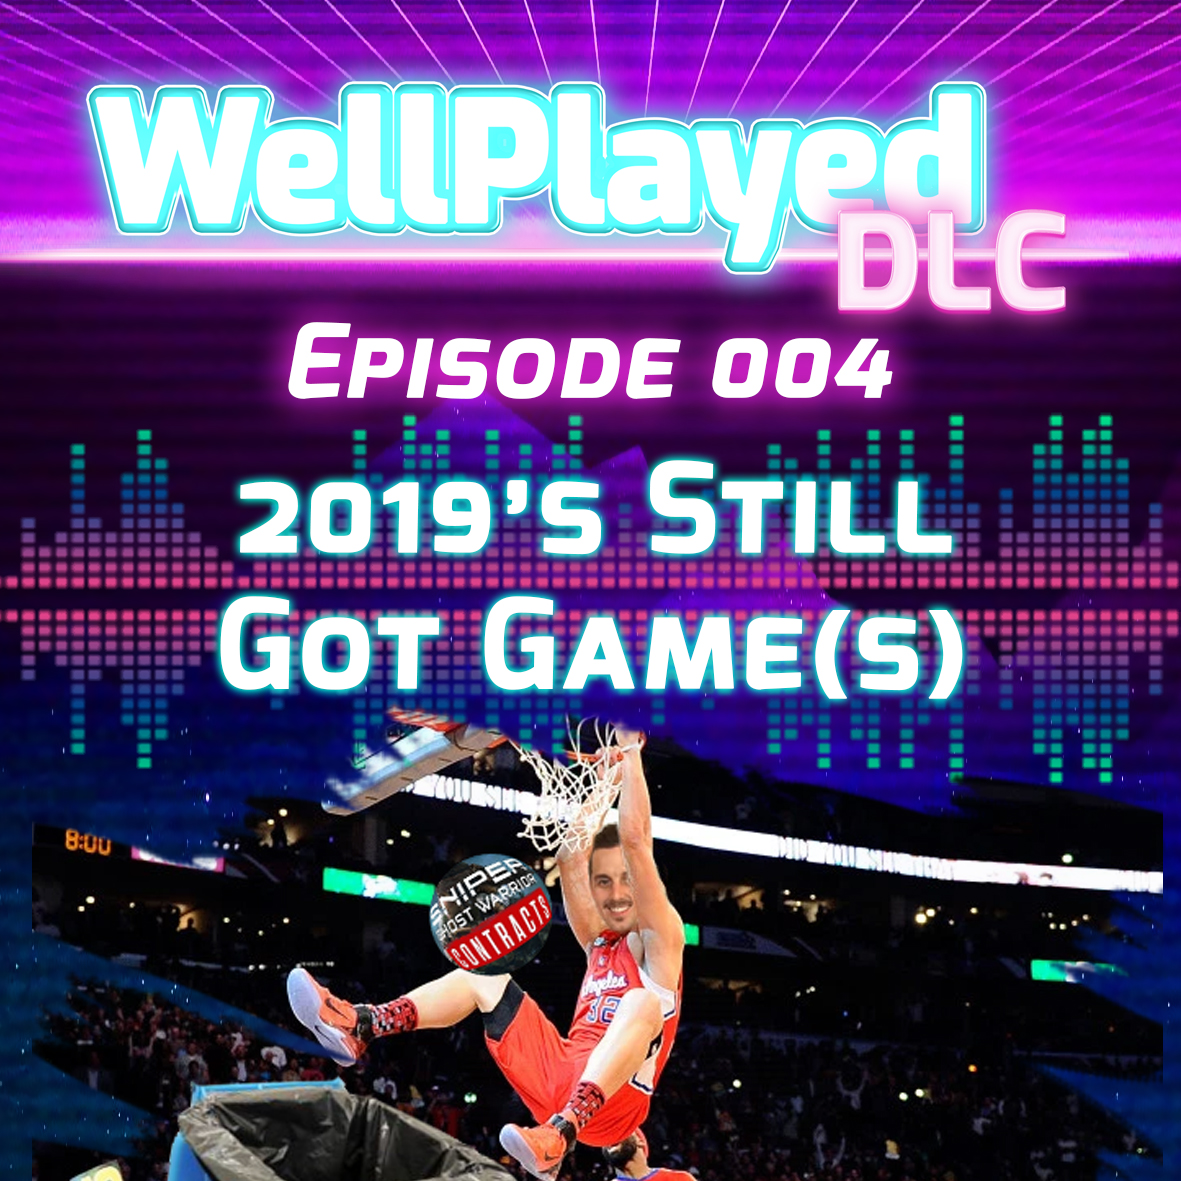 The WellPlayed DLC Podcast Episode 004 – 2019's Still Got Game(s)